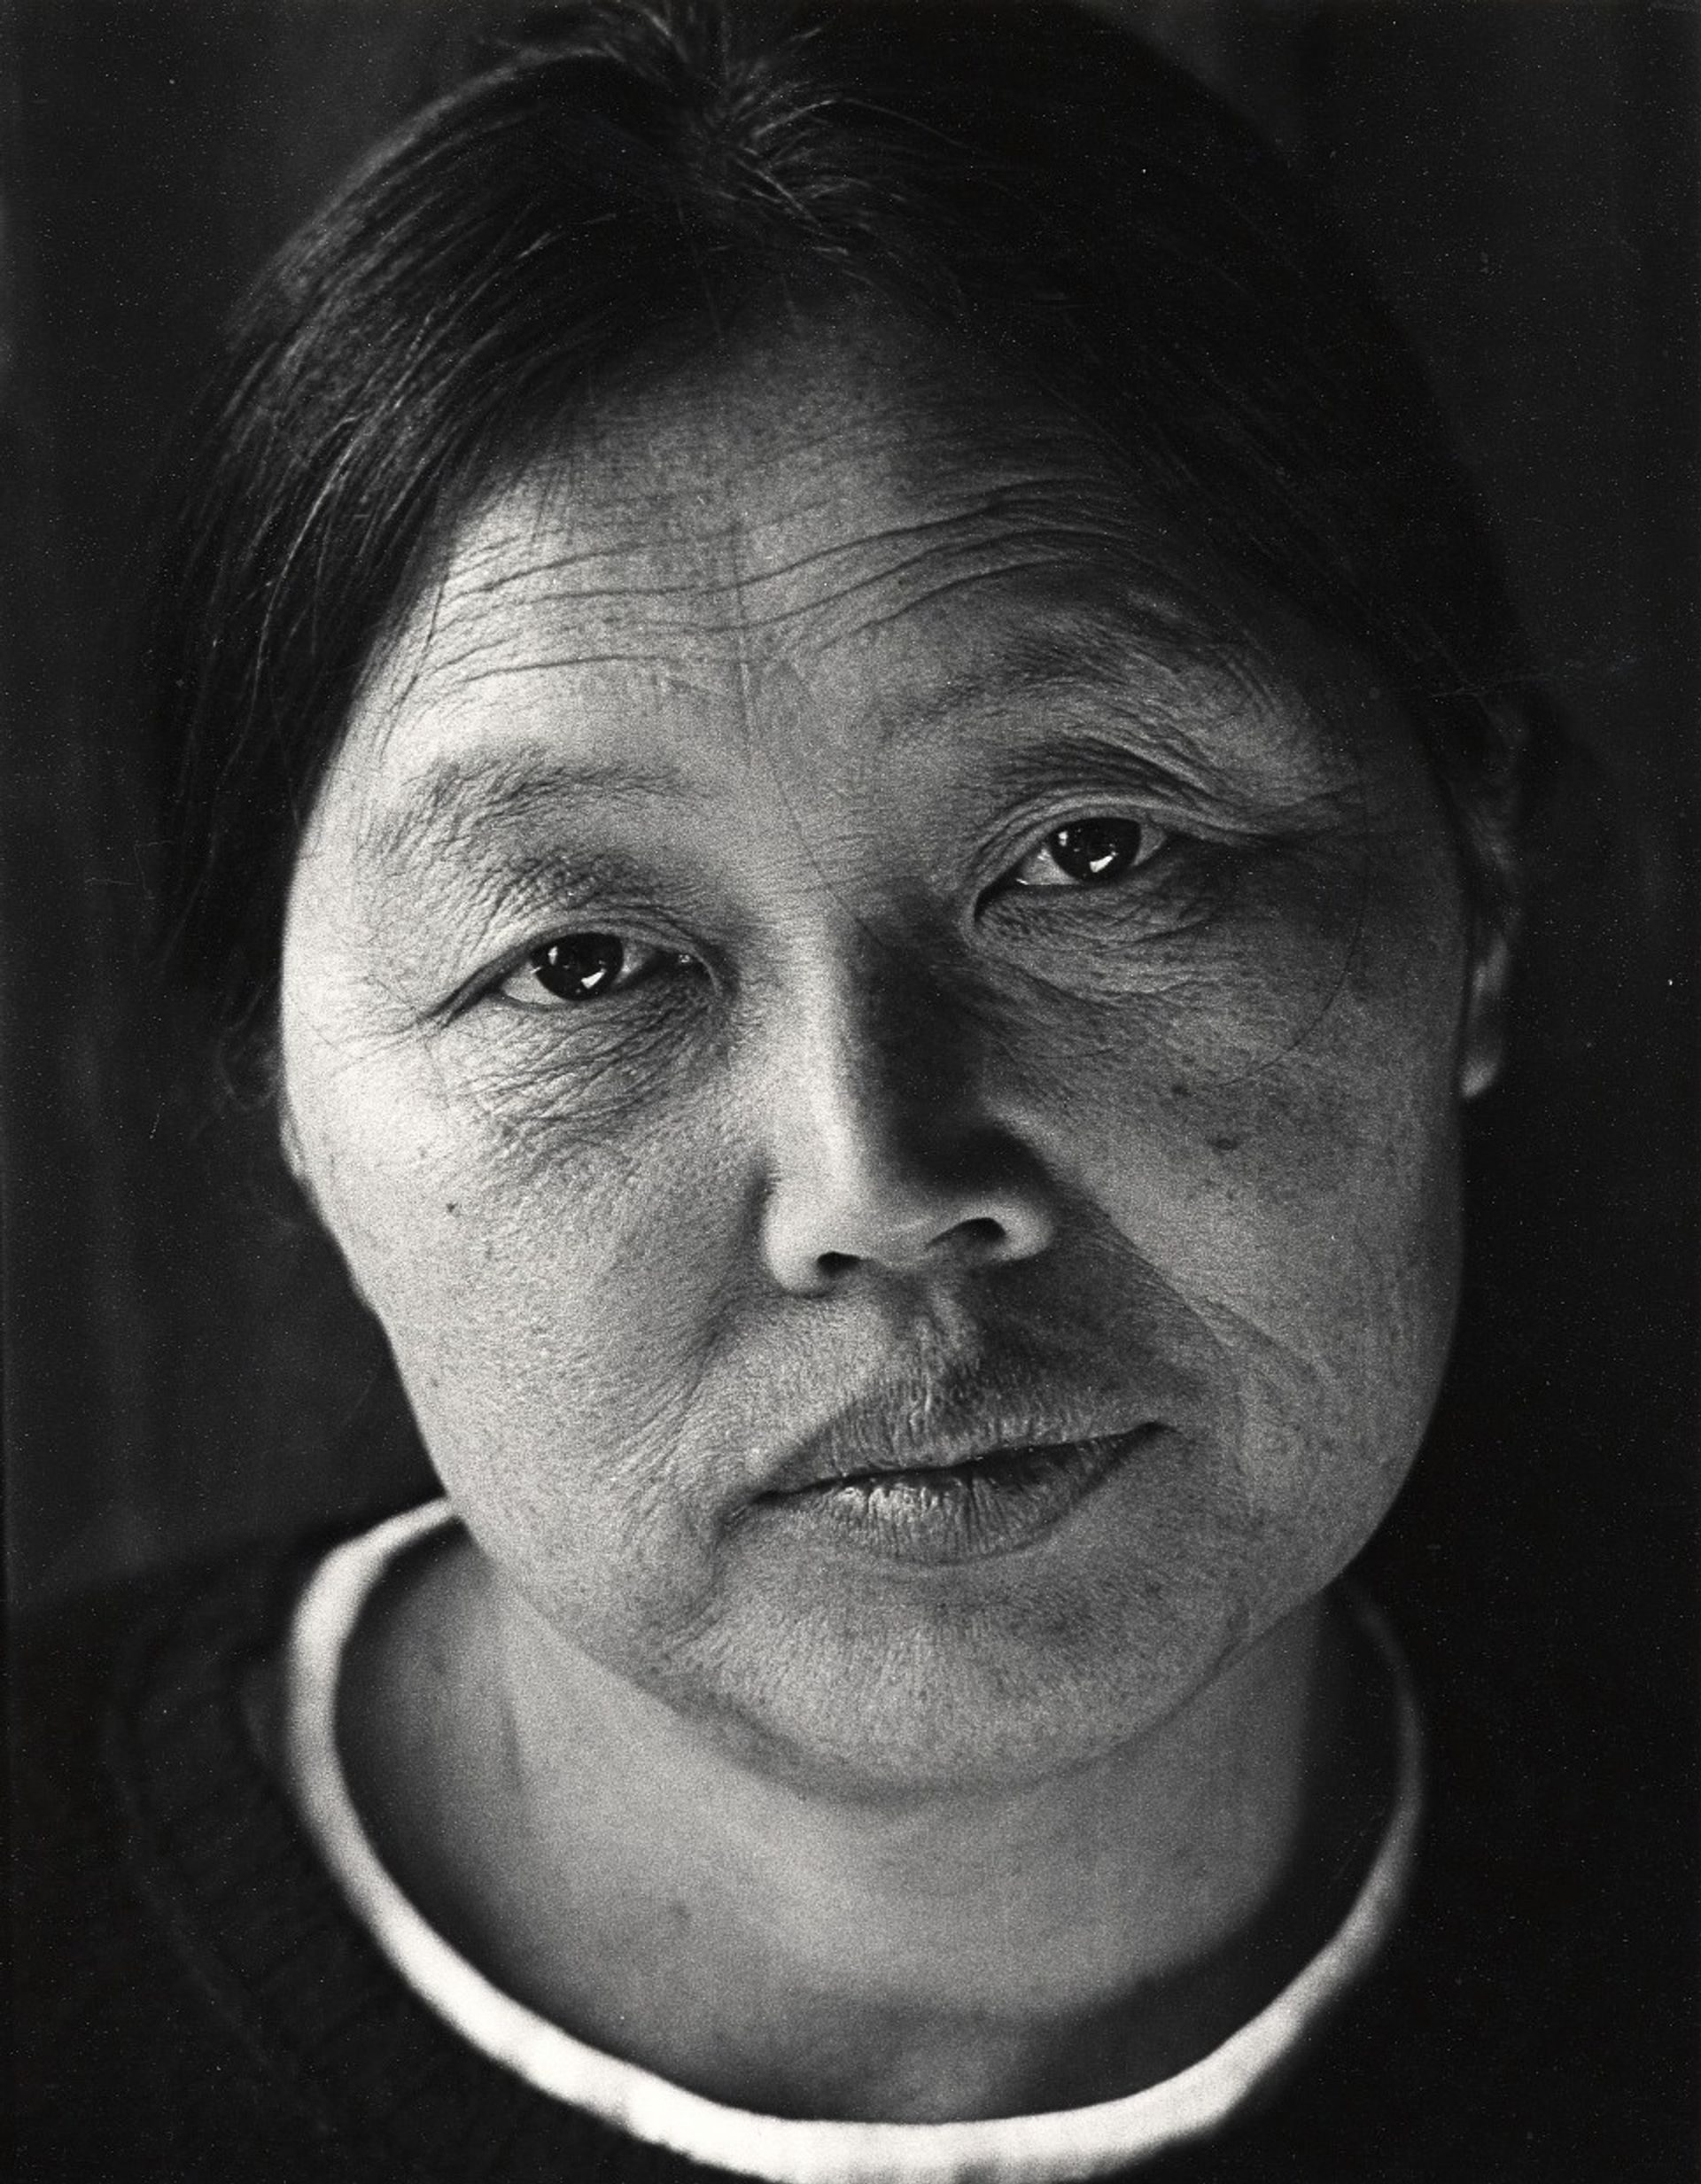 The late artist Ruth Asawa (photographed in 1973) is one of the artists profile in The Archives of American Art's focus on Asian Pacific American artists this month Mimi Jacobs